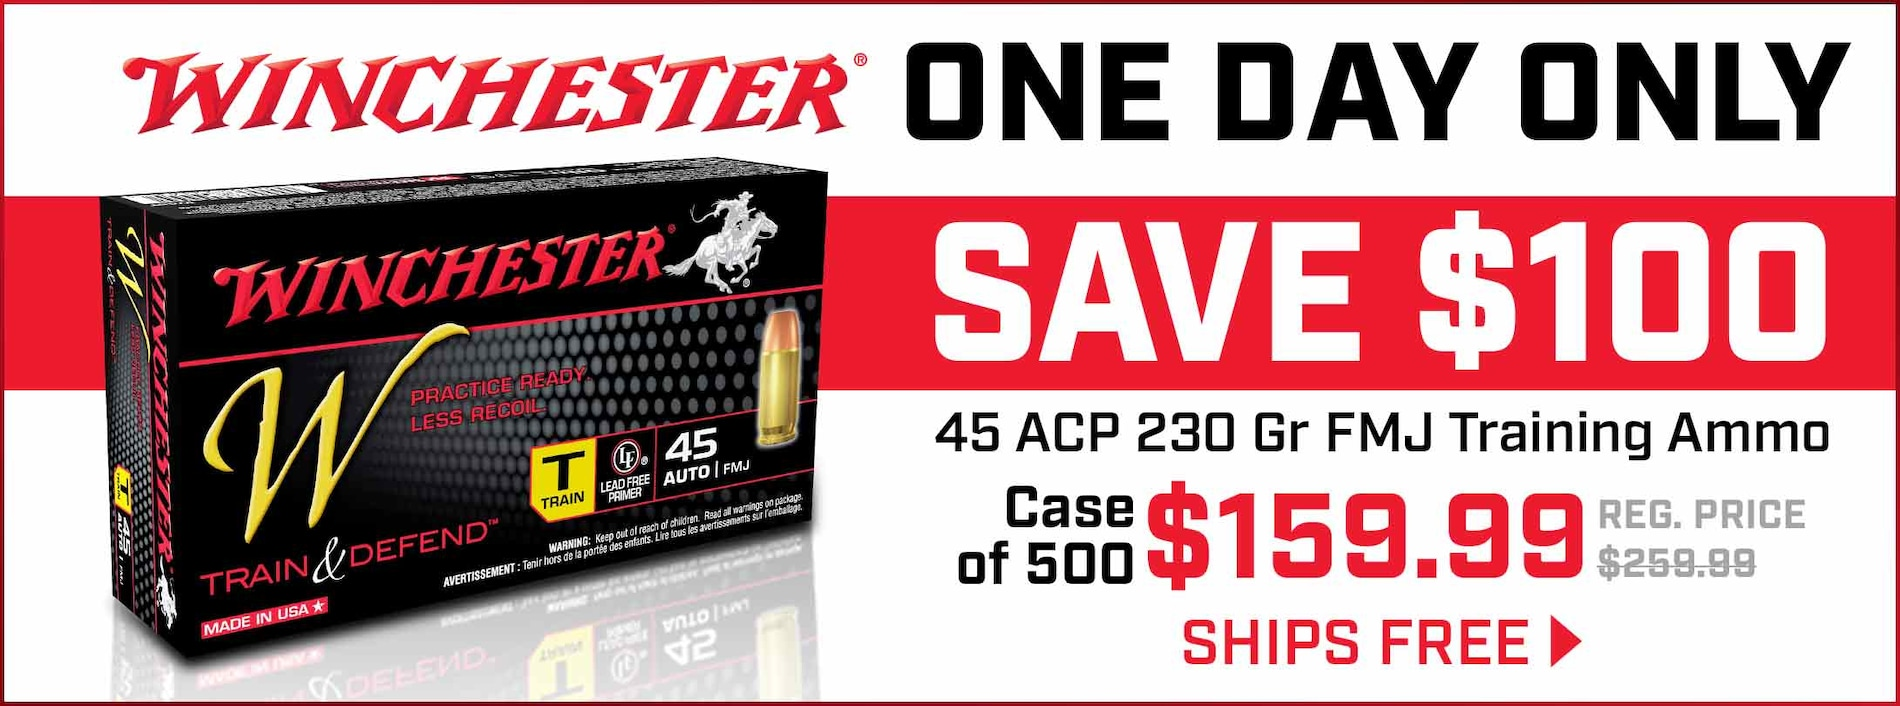 1 Day Only! Save $100 & Free Shipping on Winchester 45 ACP Ammo